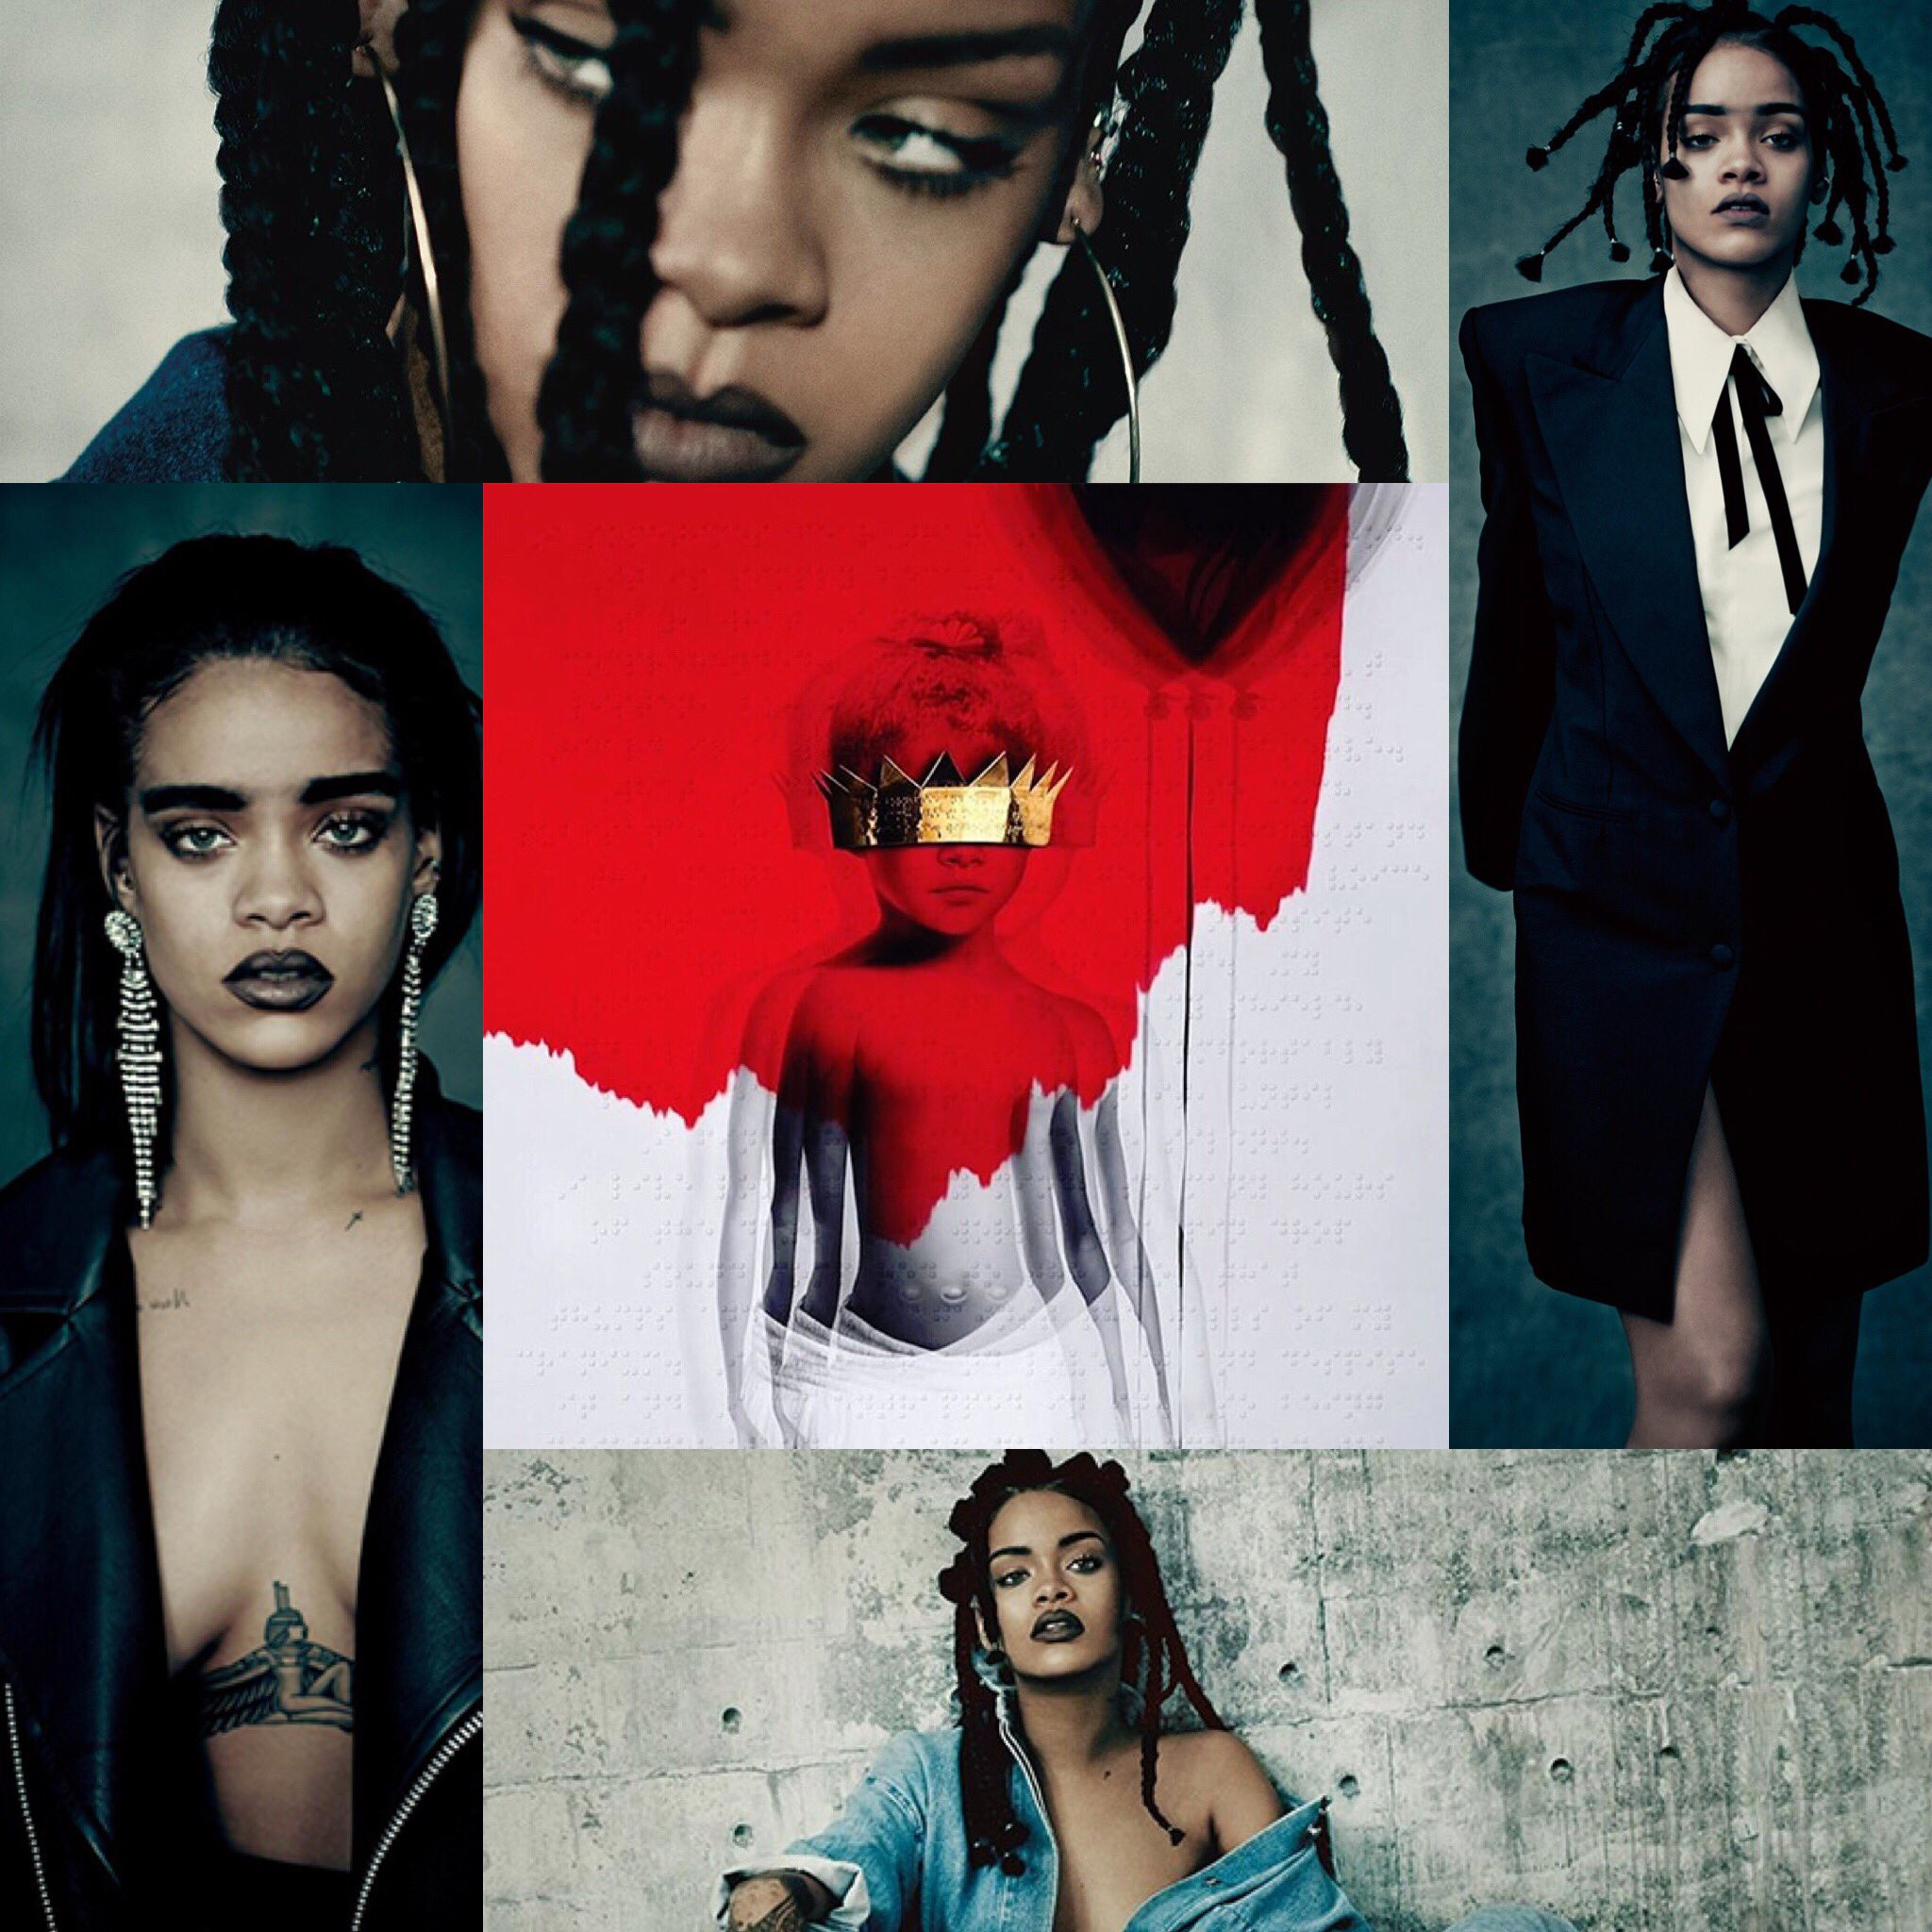 Happy second birthday to Rihanna s Album Anti